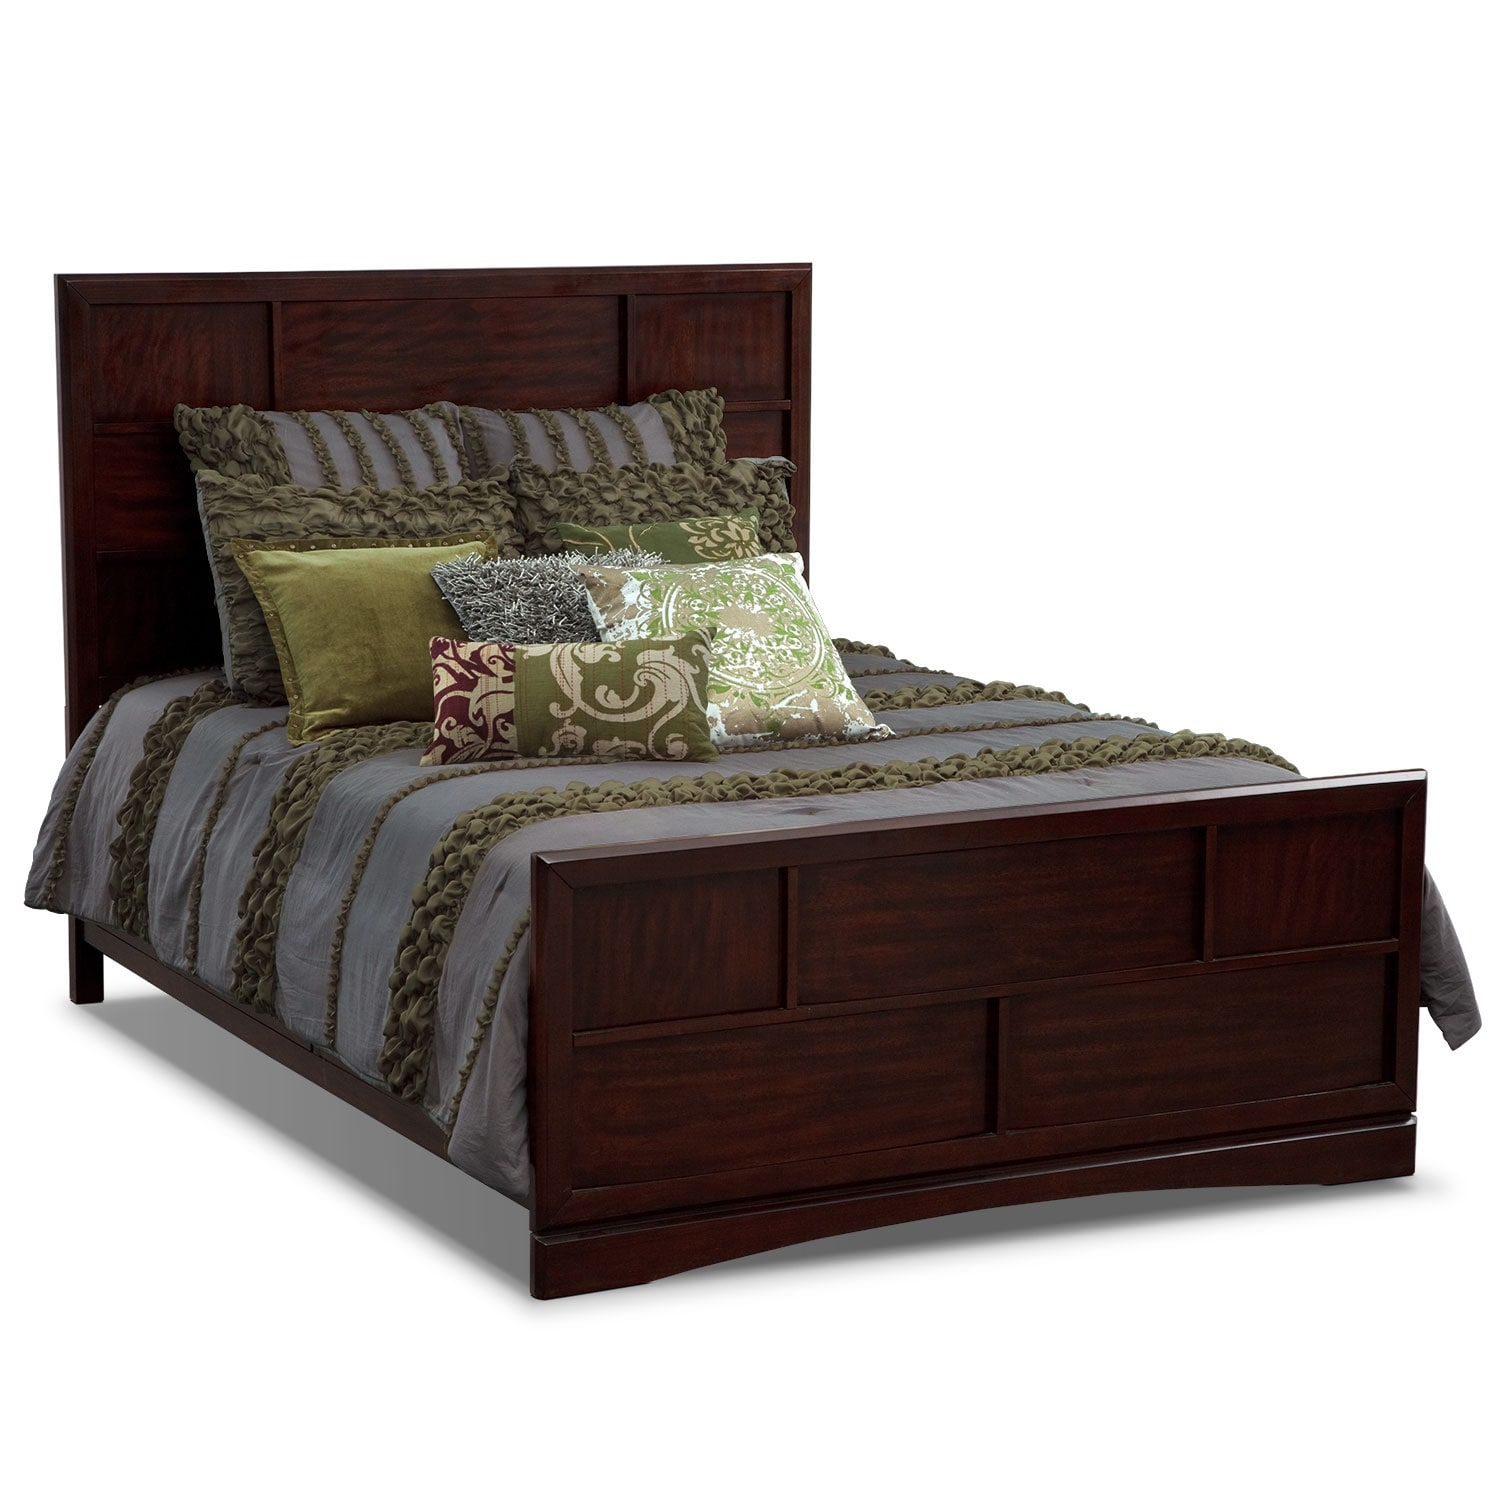 Caroline III Queen Bedding Set